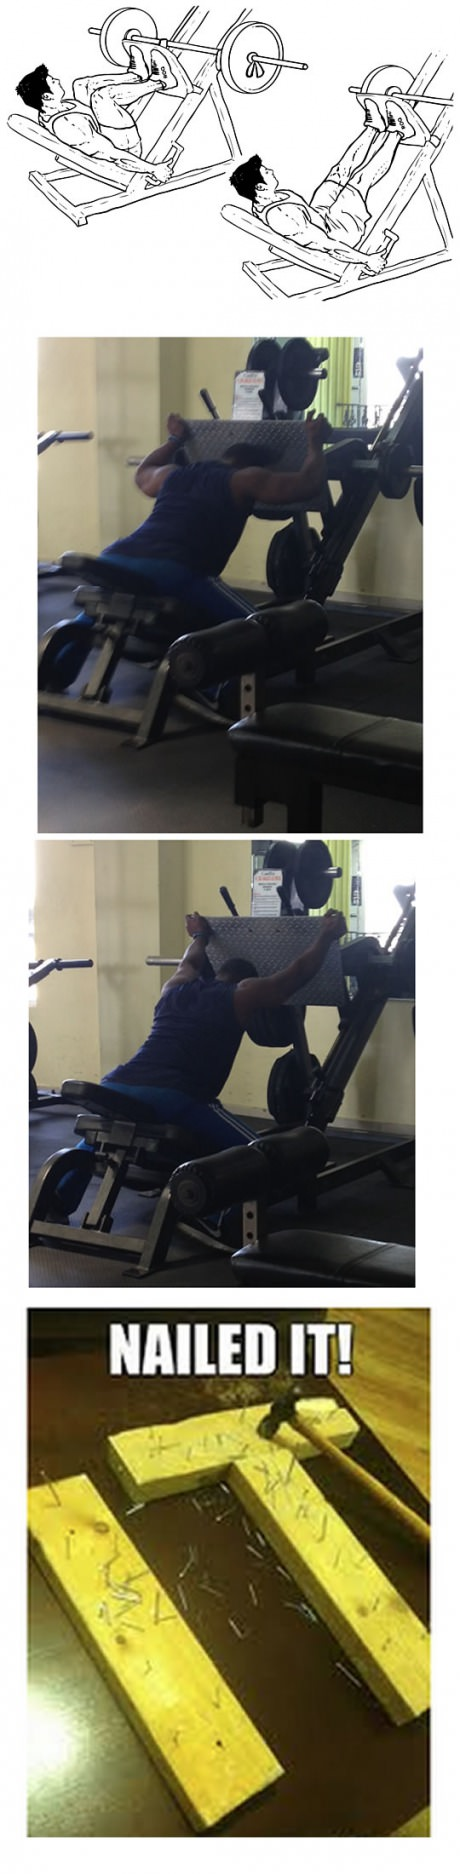 instructions-unclear-gym-nailed-it